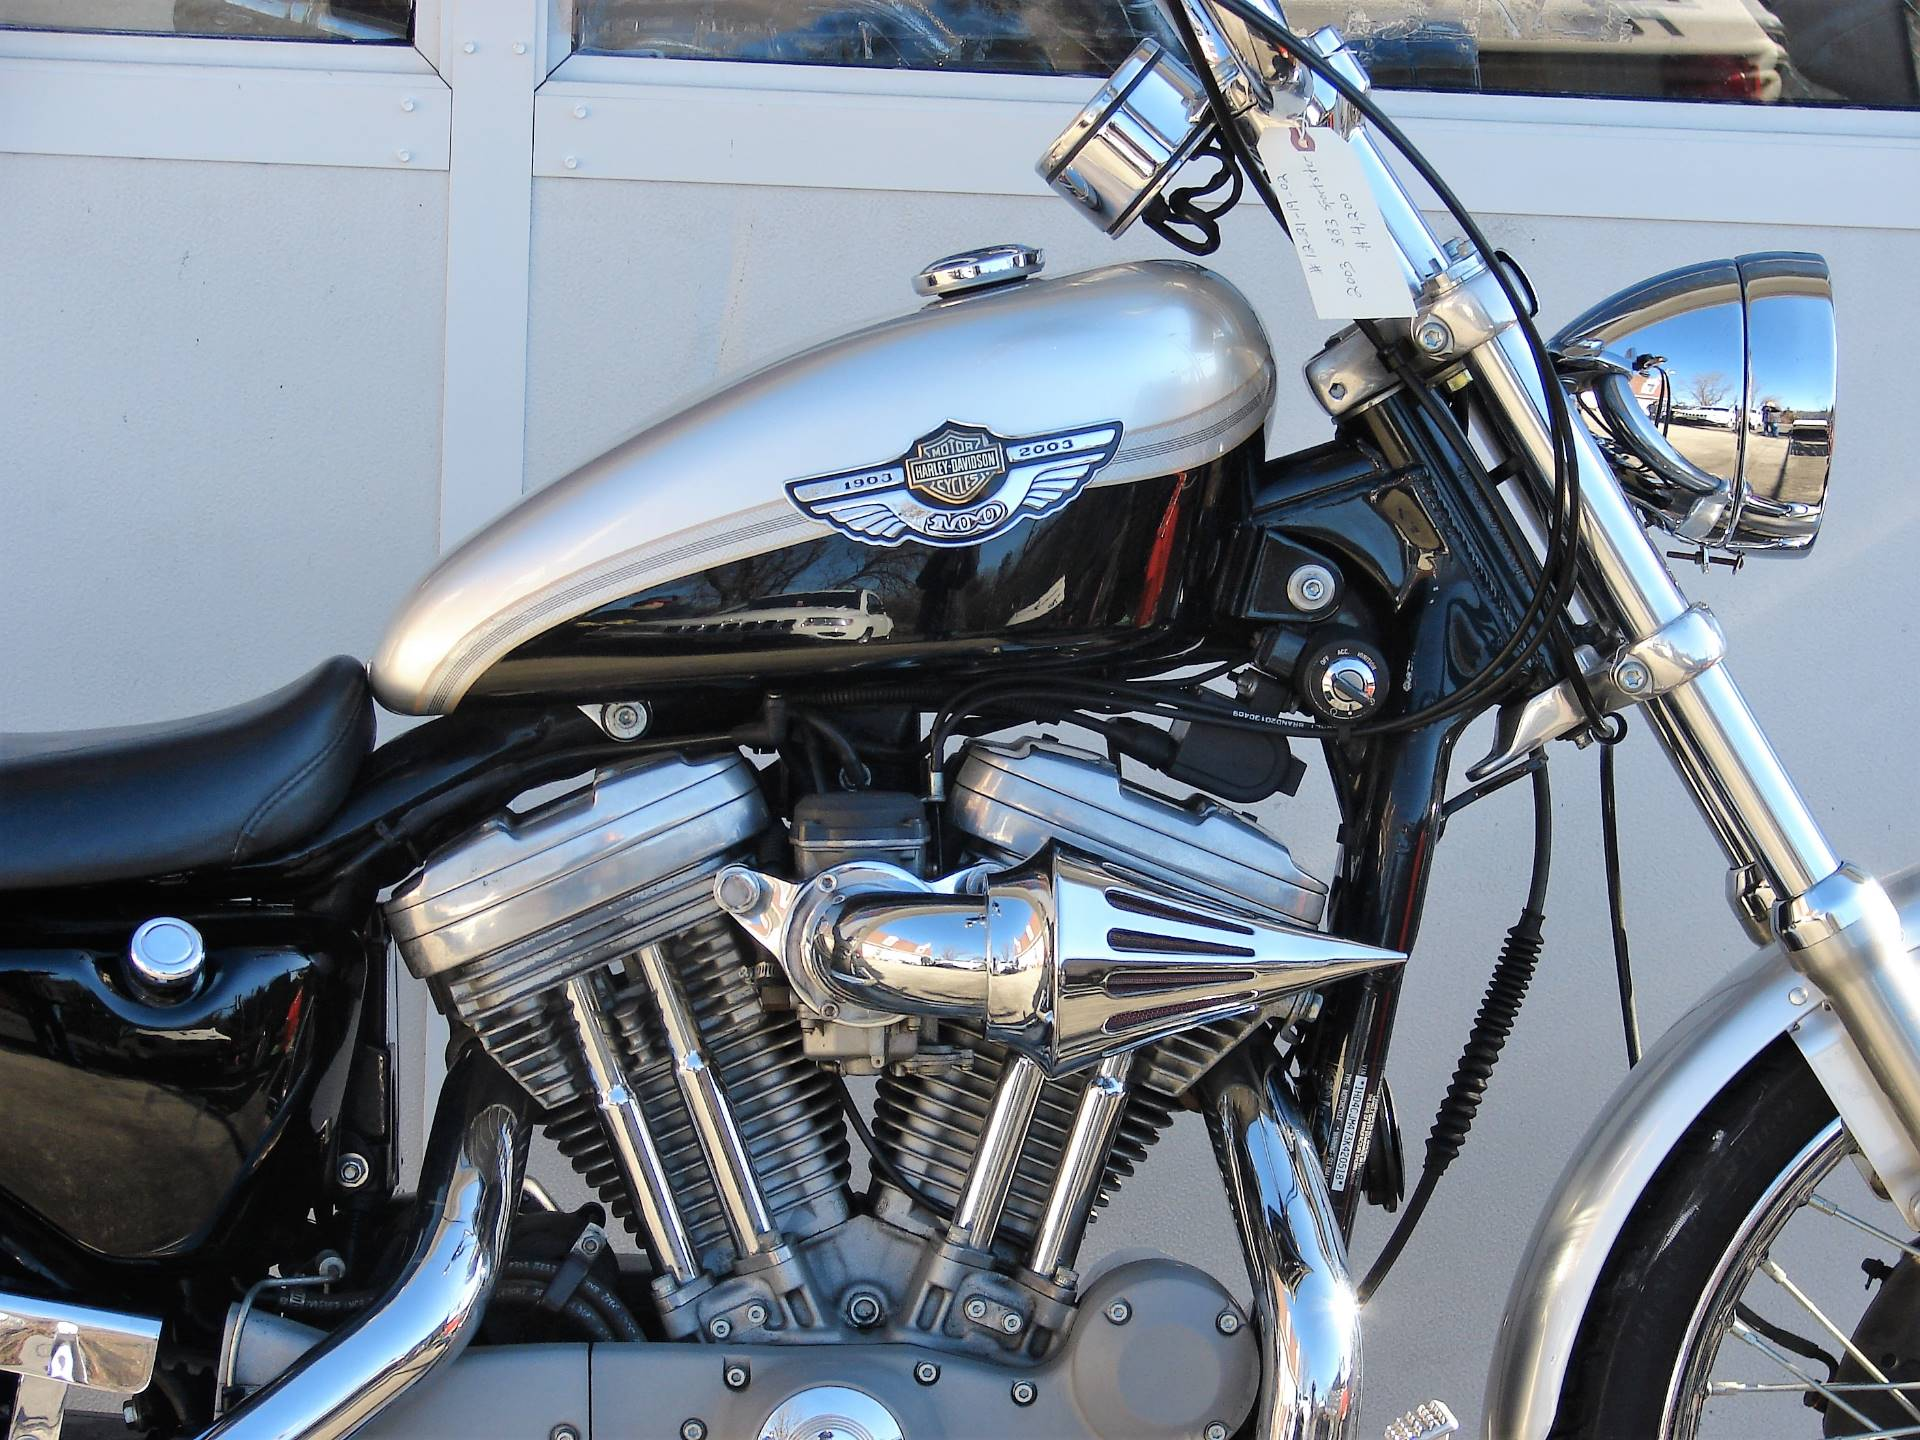 2003 Harley-Davidson XLH 883 Sportster (Anniversary Edition) (Silver & Black) in Williamstown, New Jersey - Photo 3